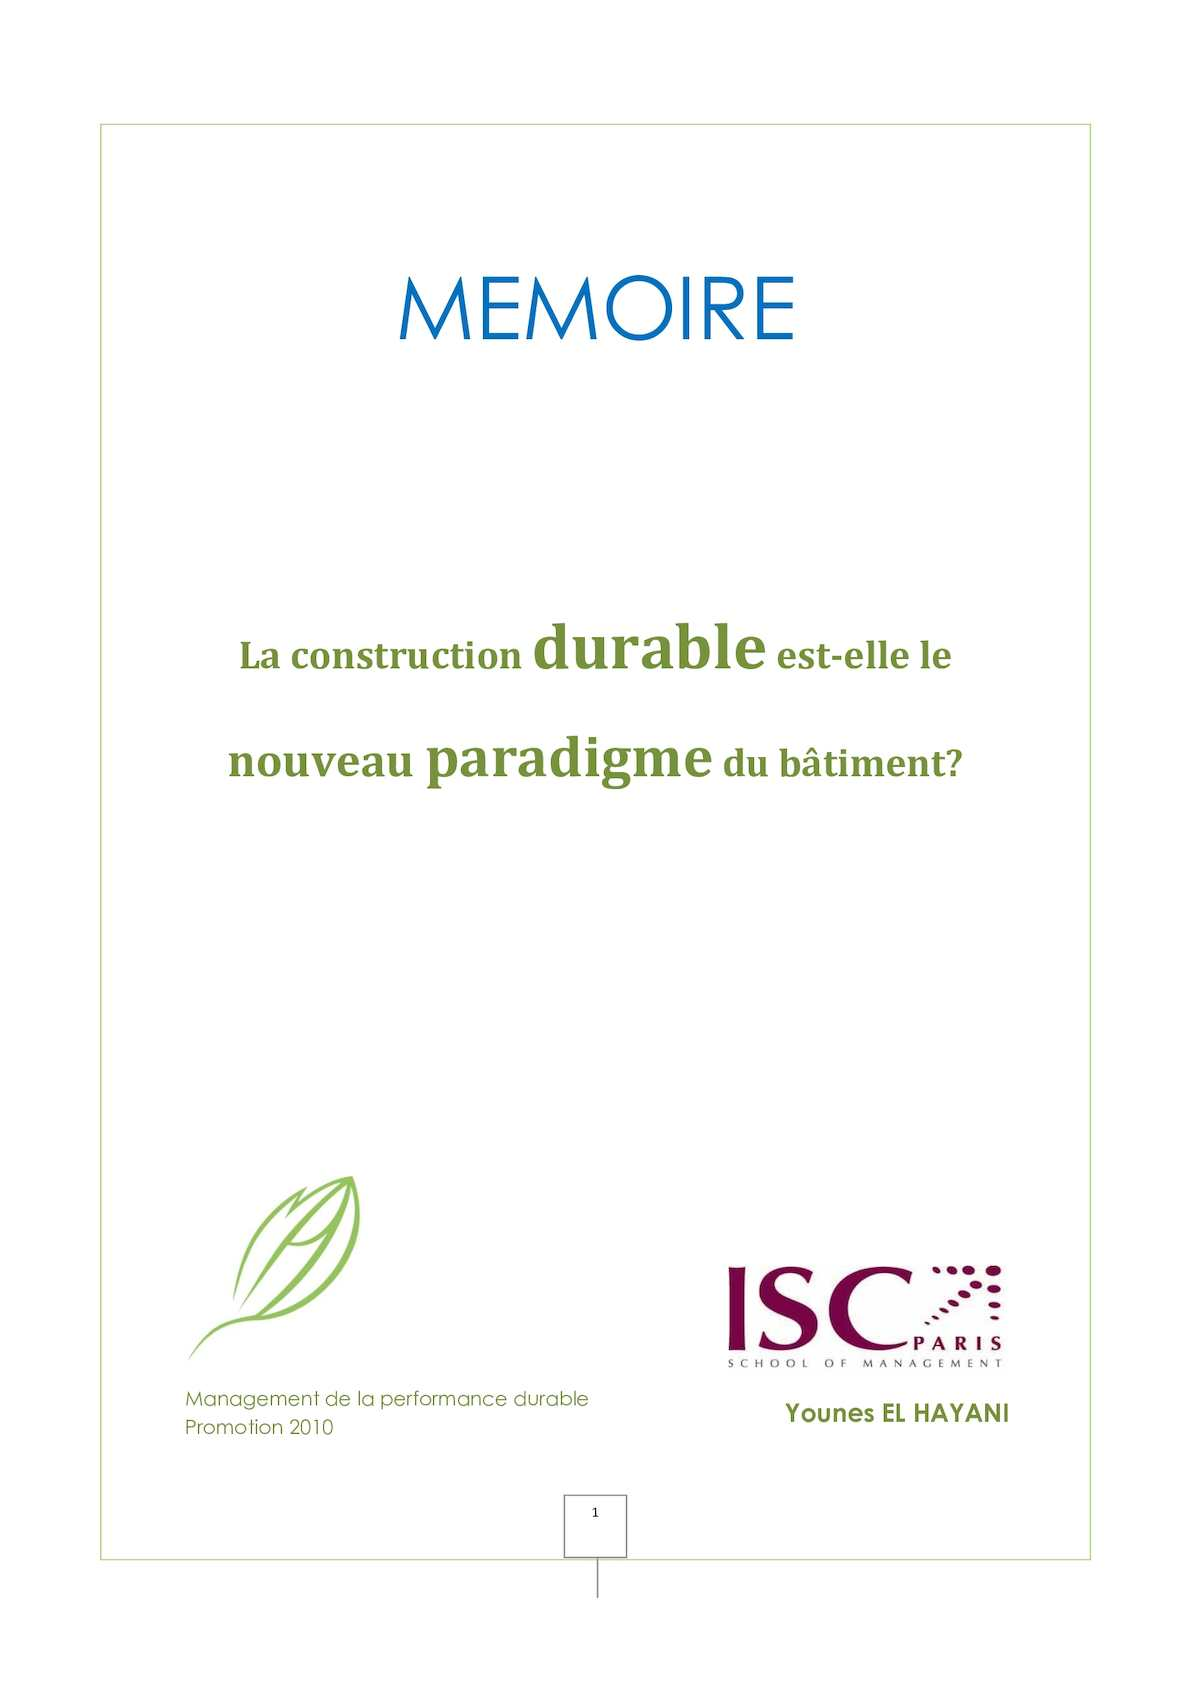 Mémoire - Construction Durable: Nouveau paradigme ? - Younes El Hayani